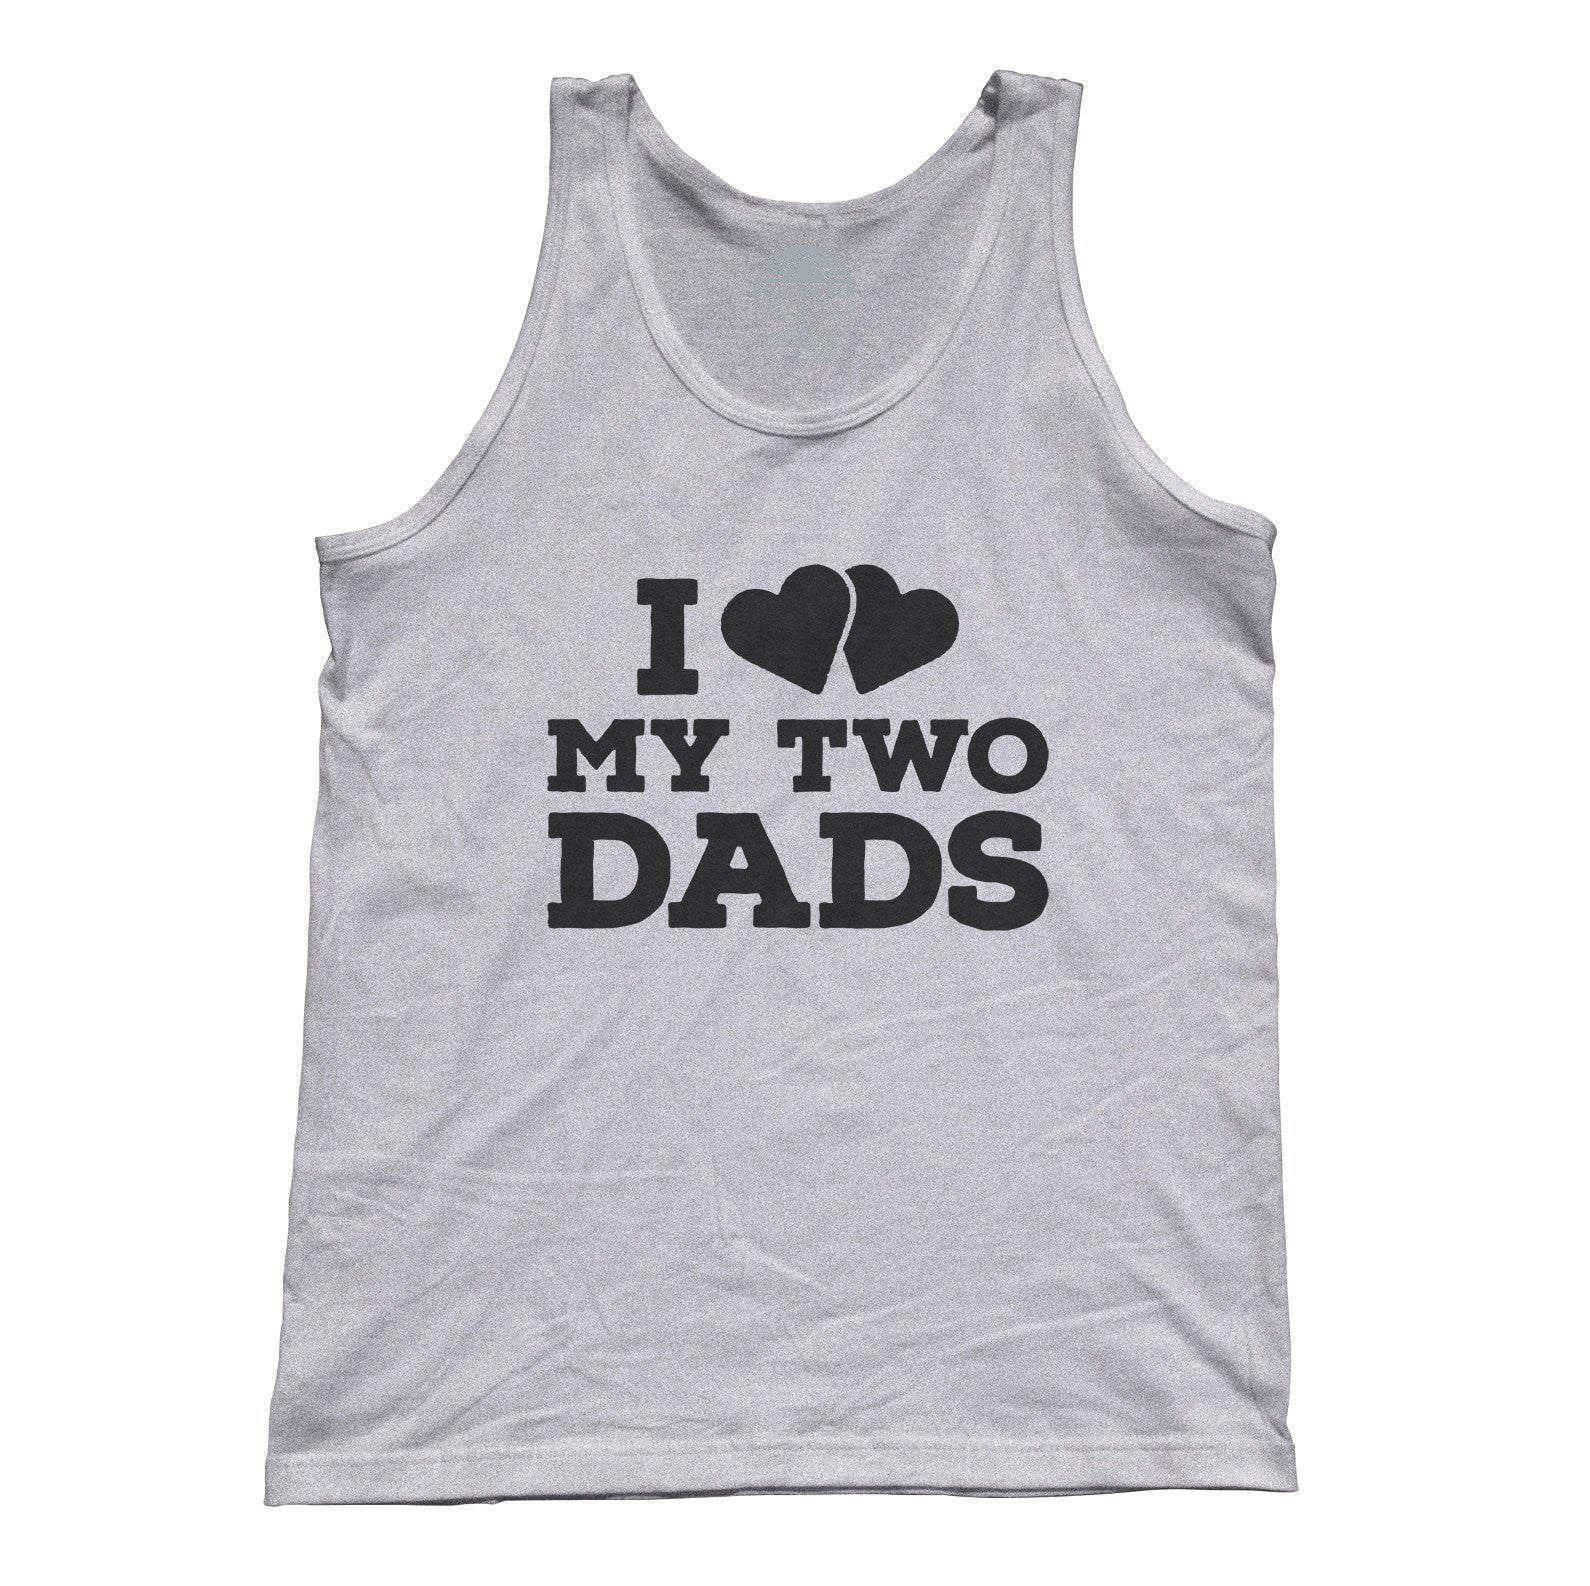 Unisex I Love My Two Dads Tank Top